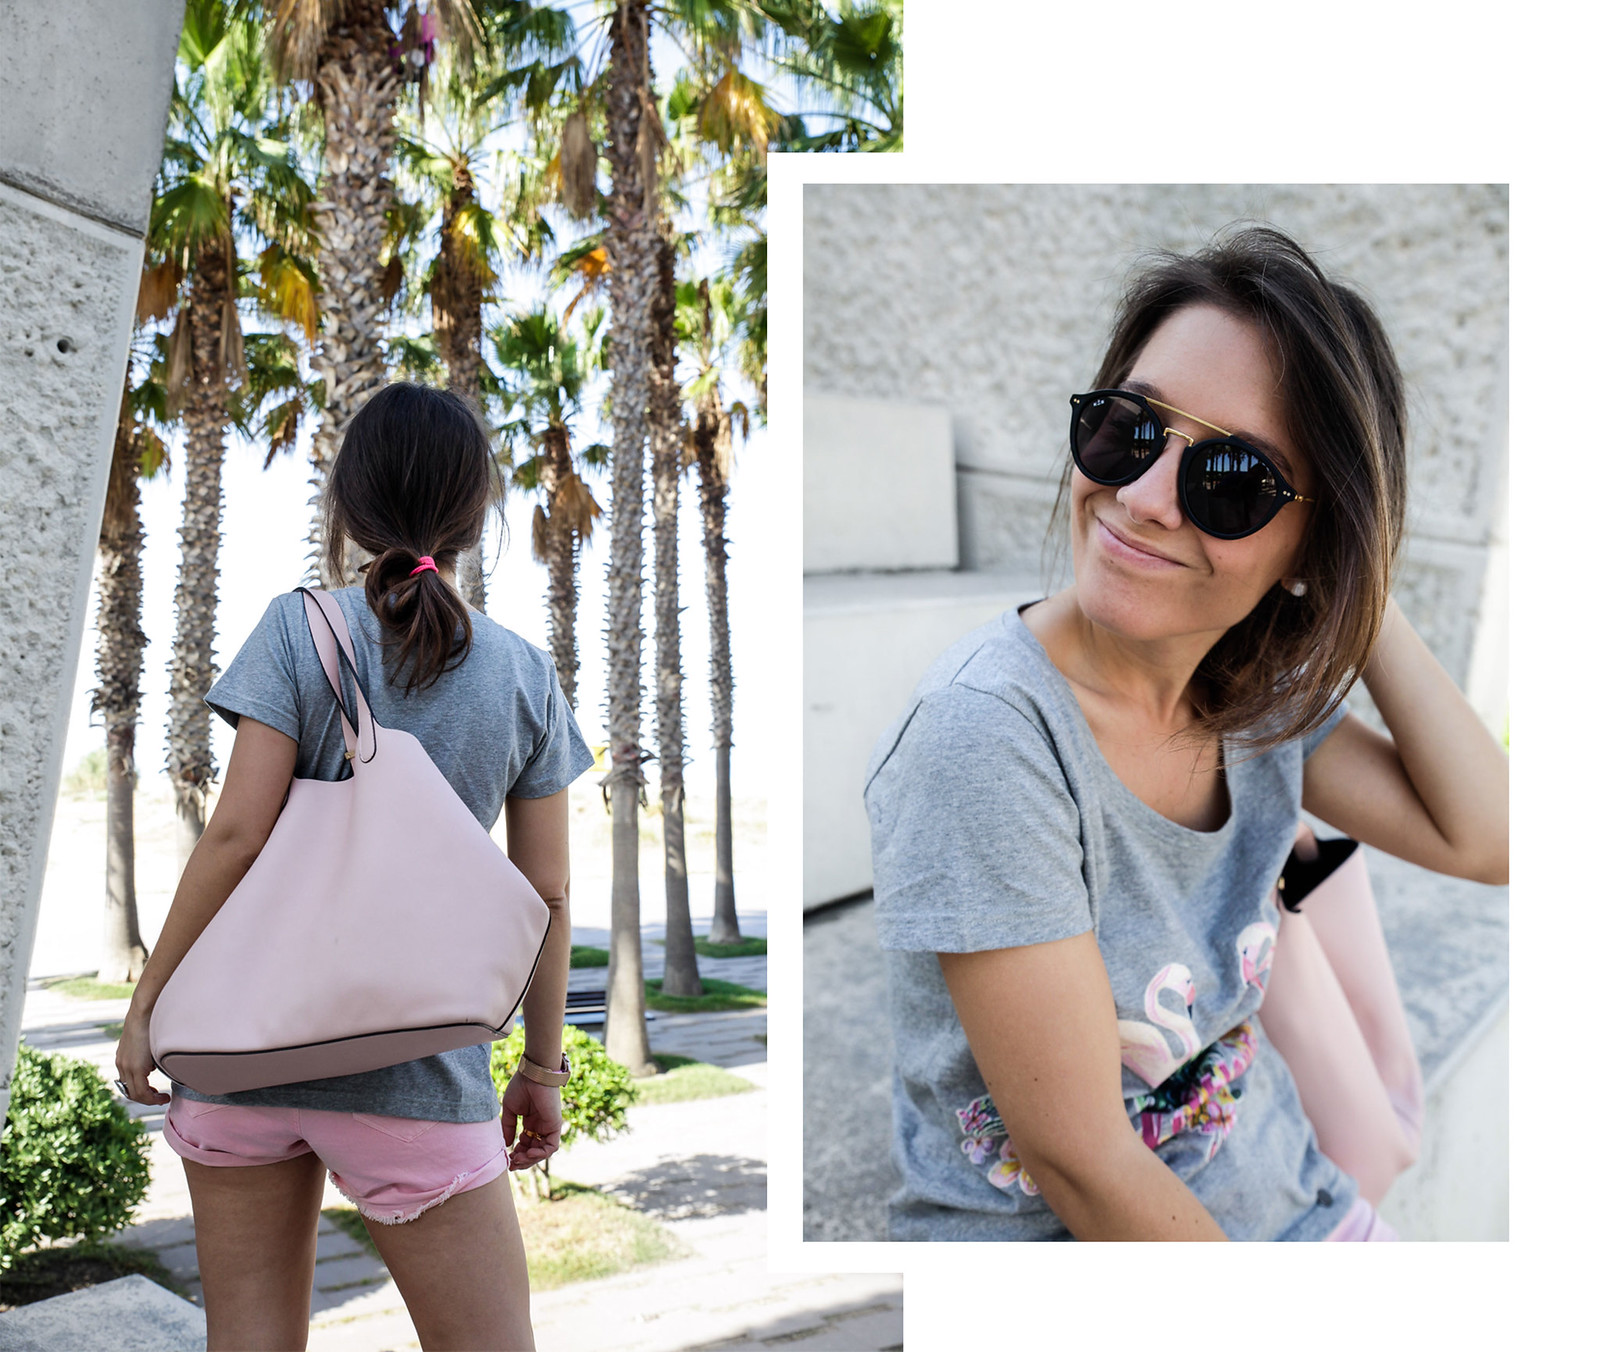 05_California_girl_rüga_shirt_flamingos_theguestgirl_LA_Barcelona_beach